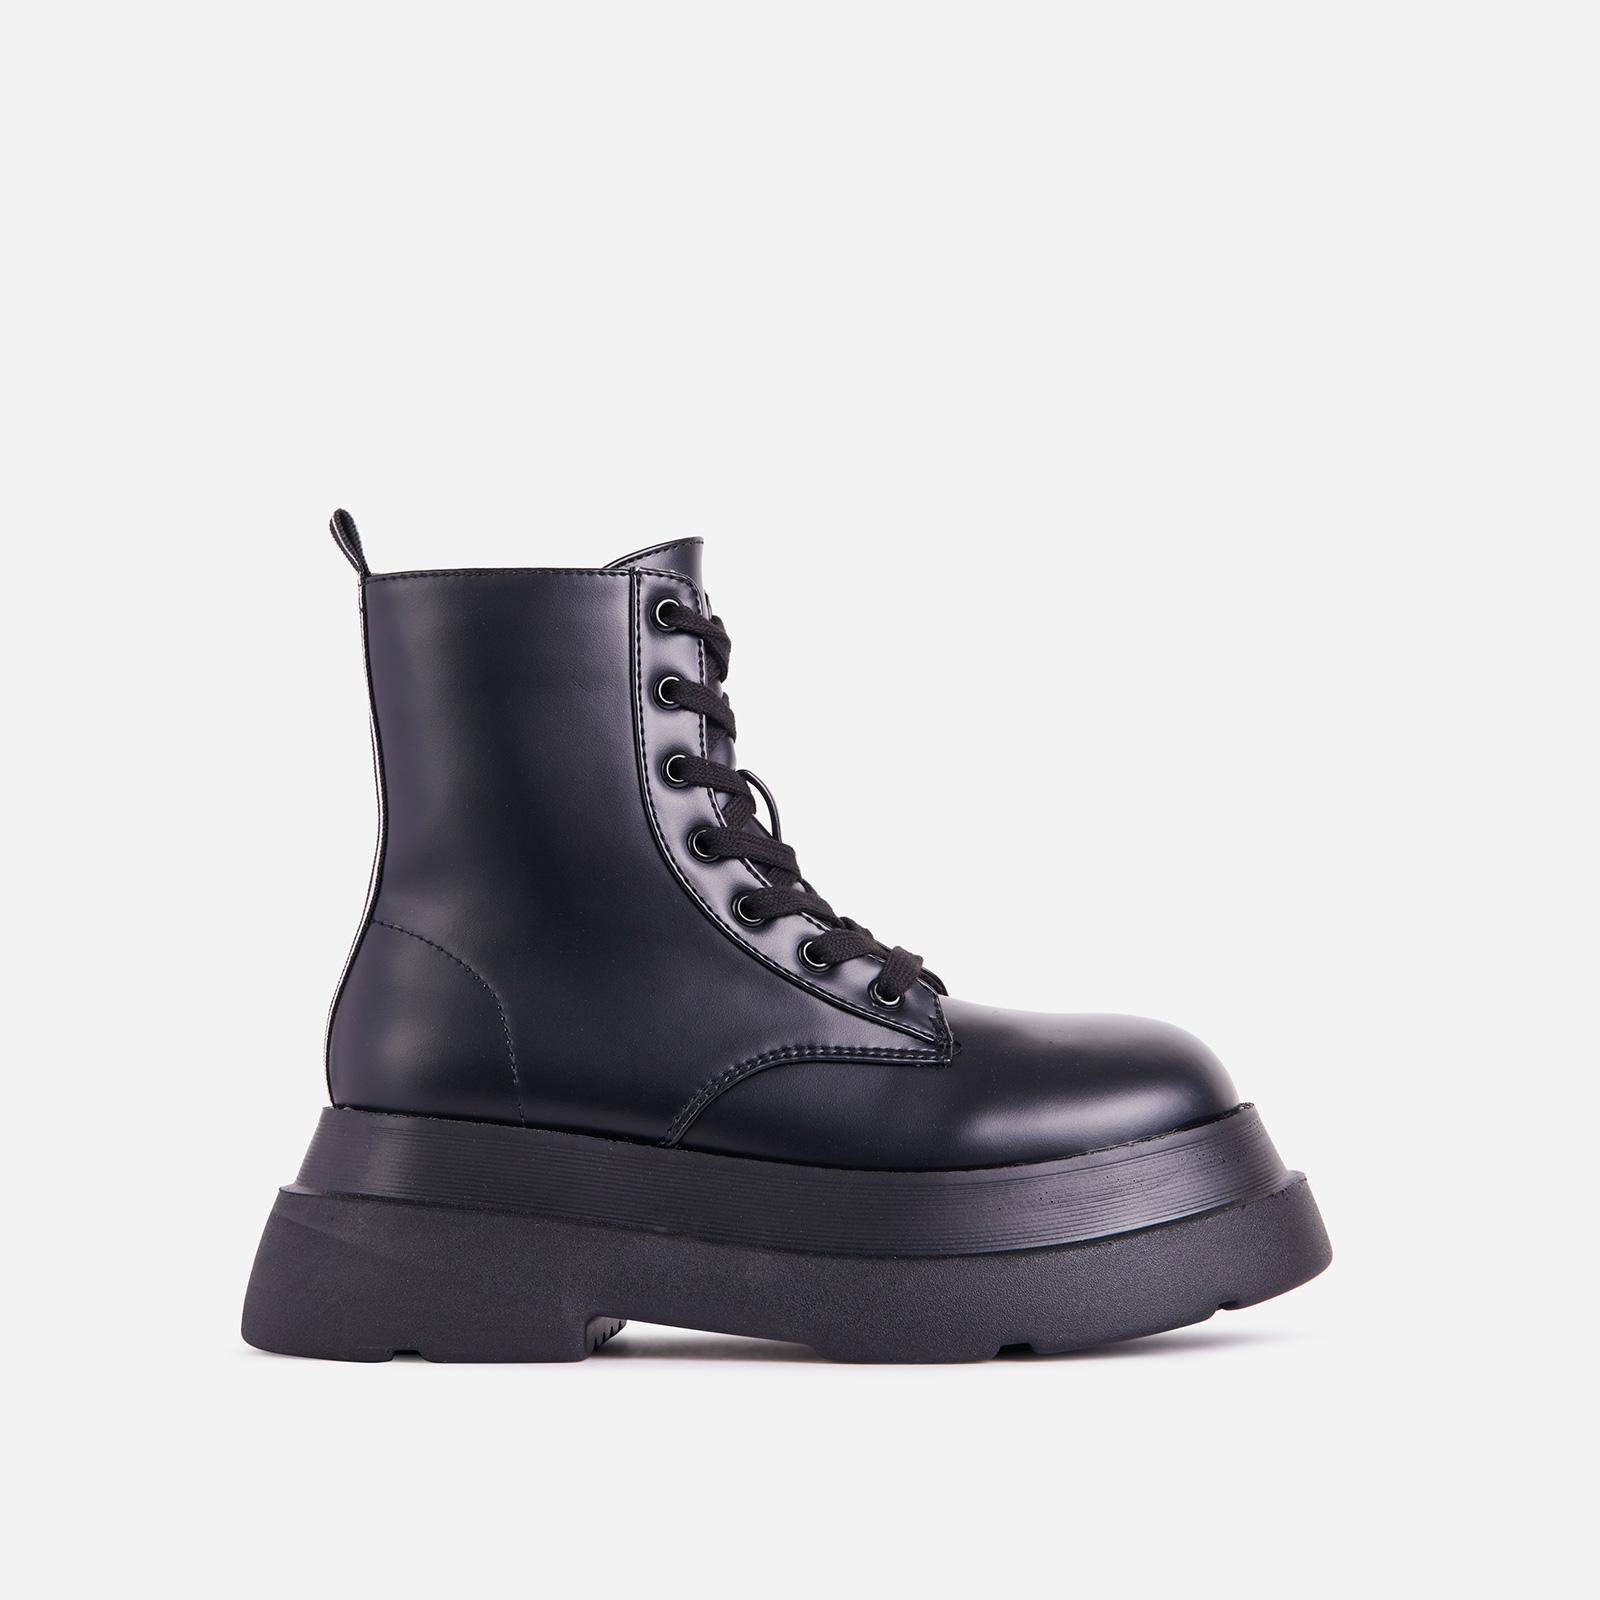 EGO Underground Lace Up Stripe Detail Chunky Sole Ankle Biker Boot In Black Faux Leather, Black  - female - Size: 9